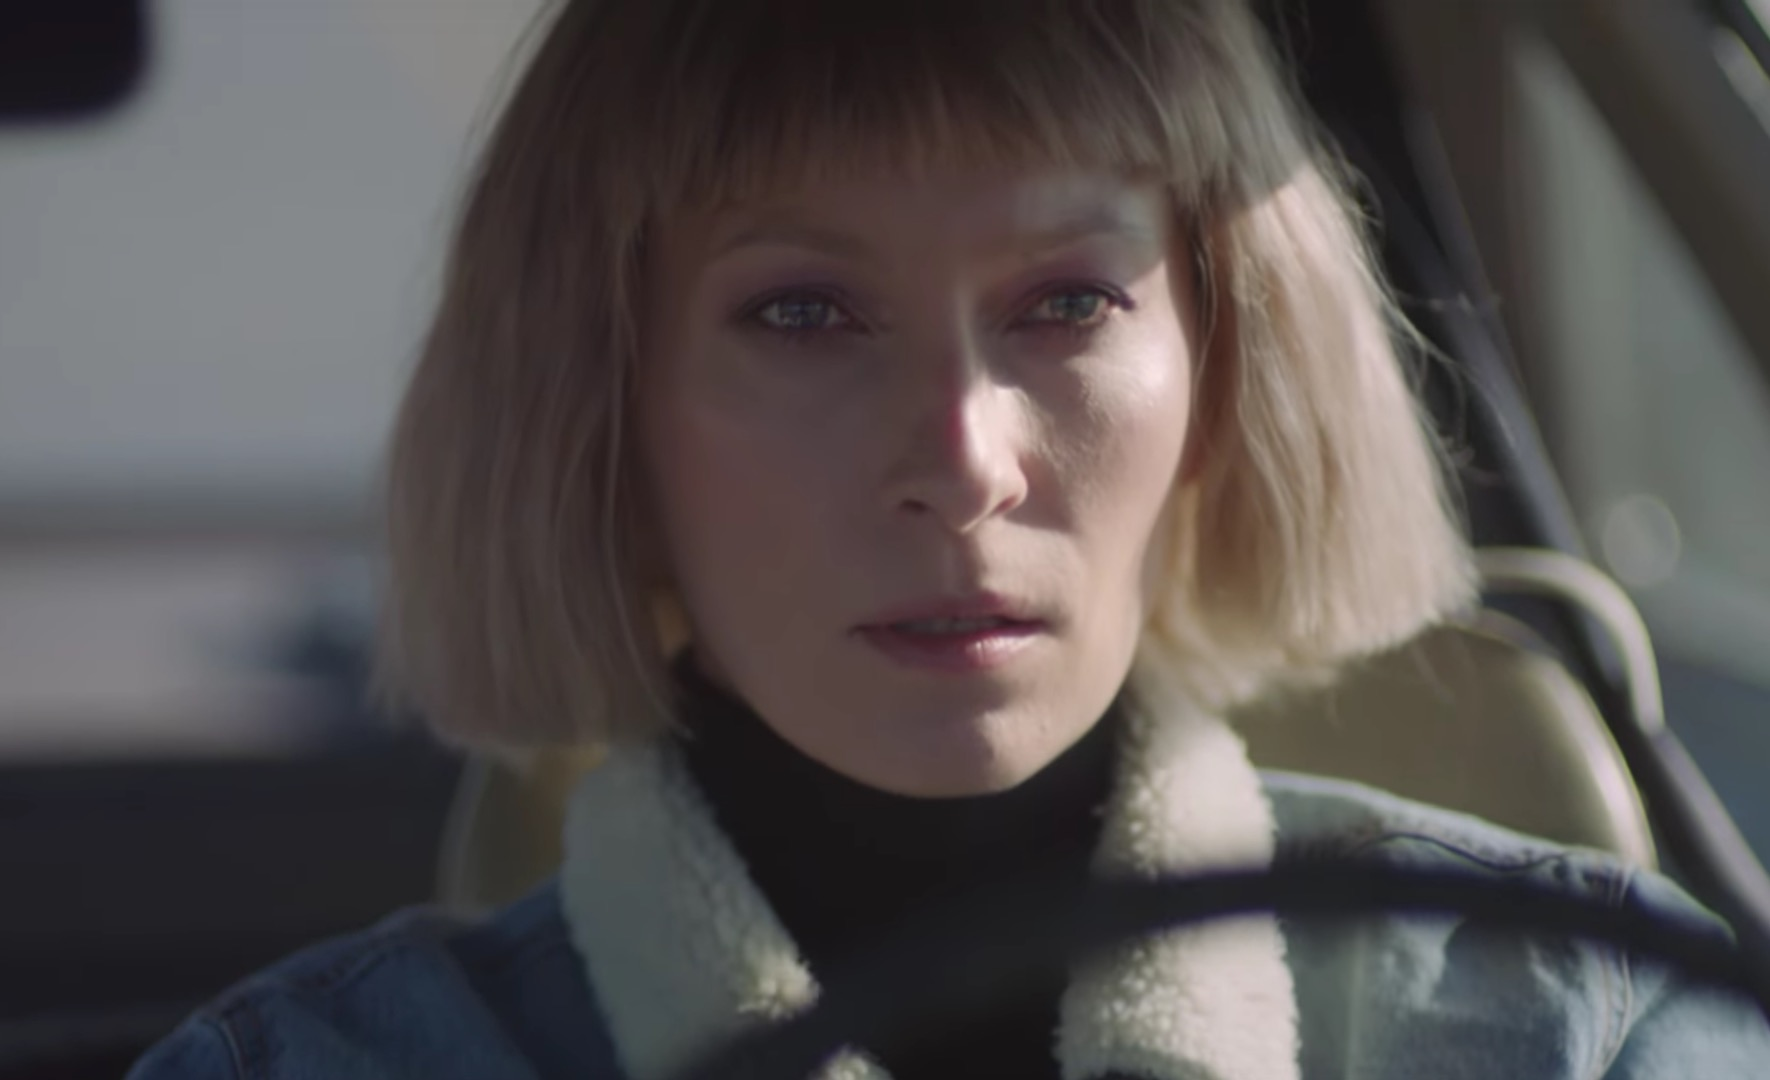 Metronomy's 'Hang Me Out to Dry' has a new video